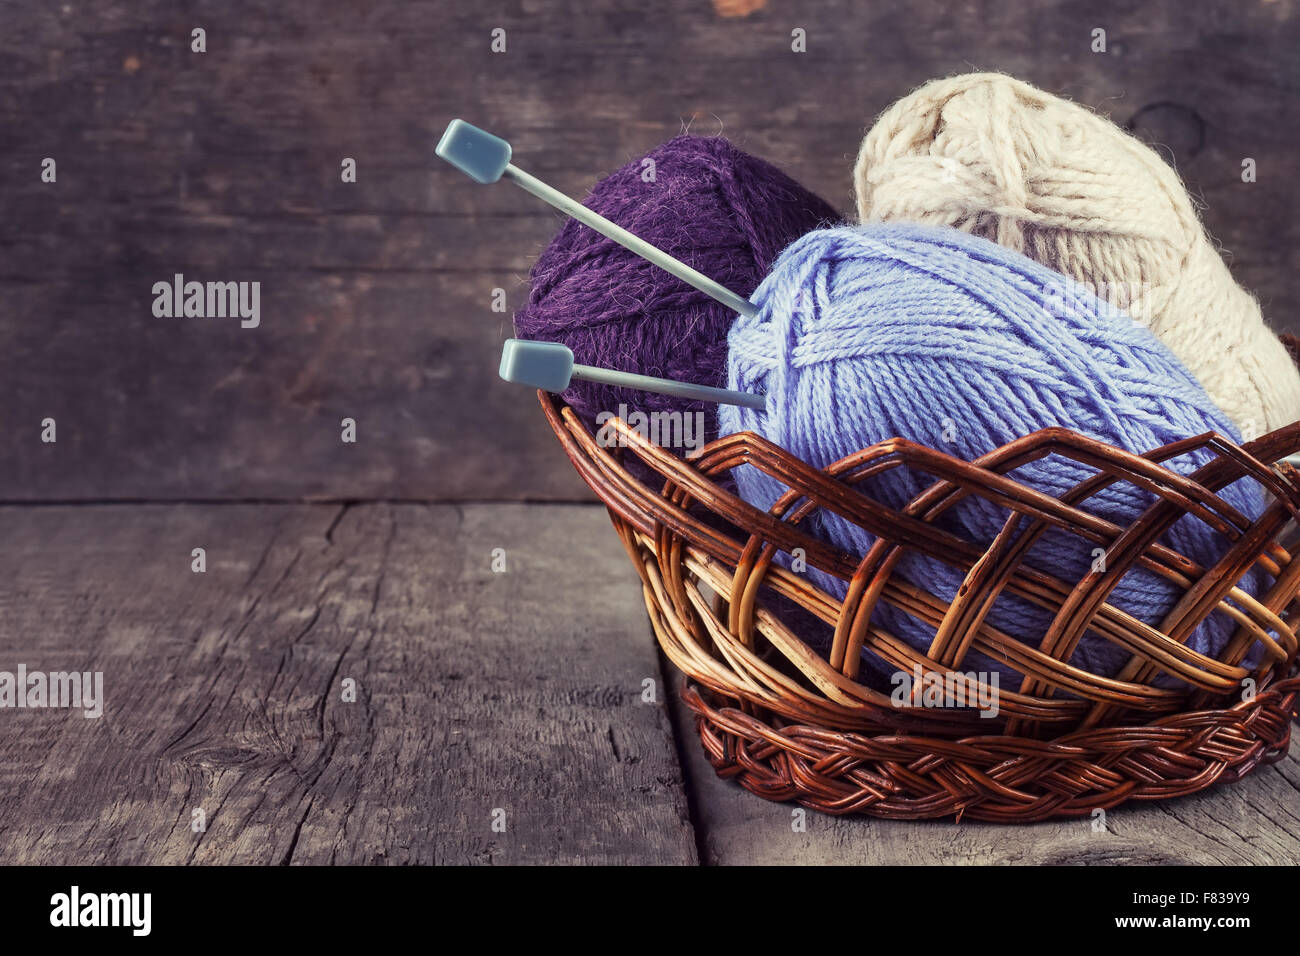 Skeins colored yarn and knitting needles in a basket on a wooden background - Stock Image